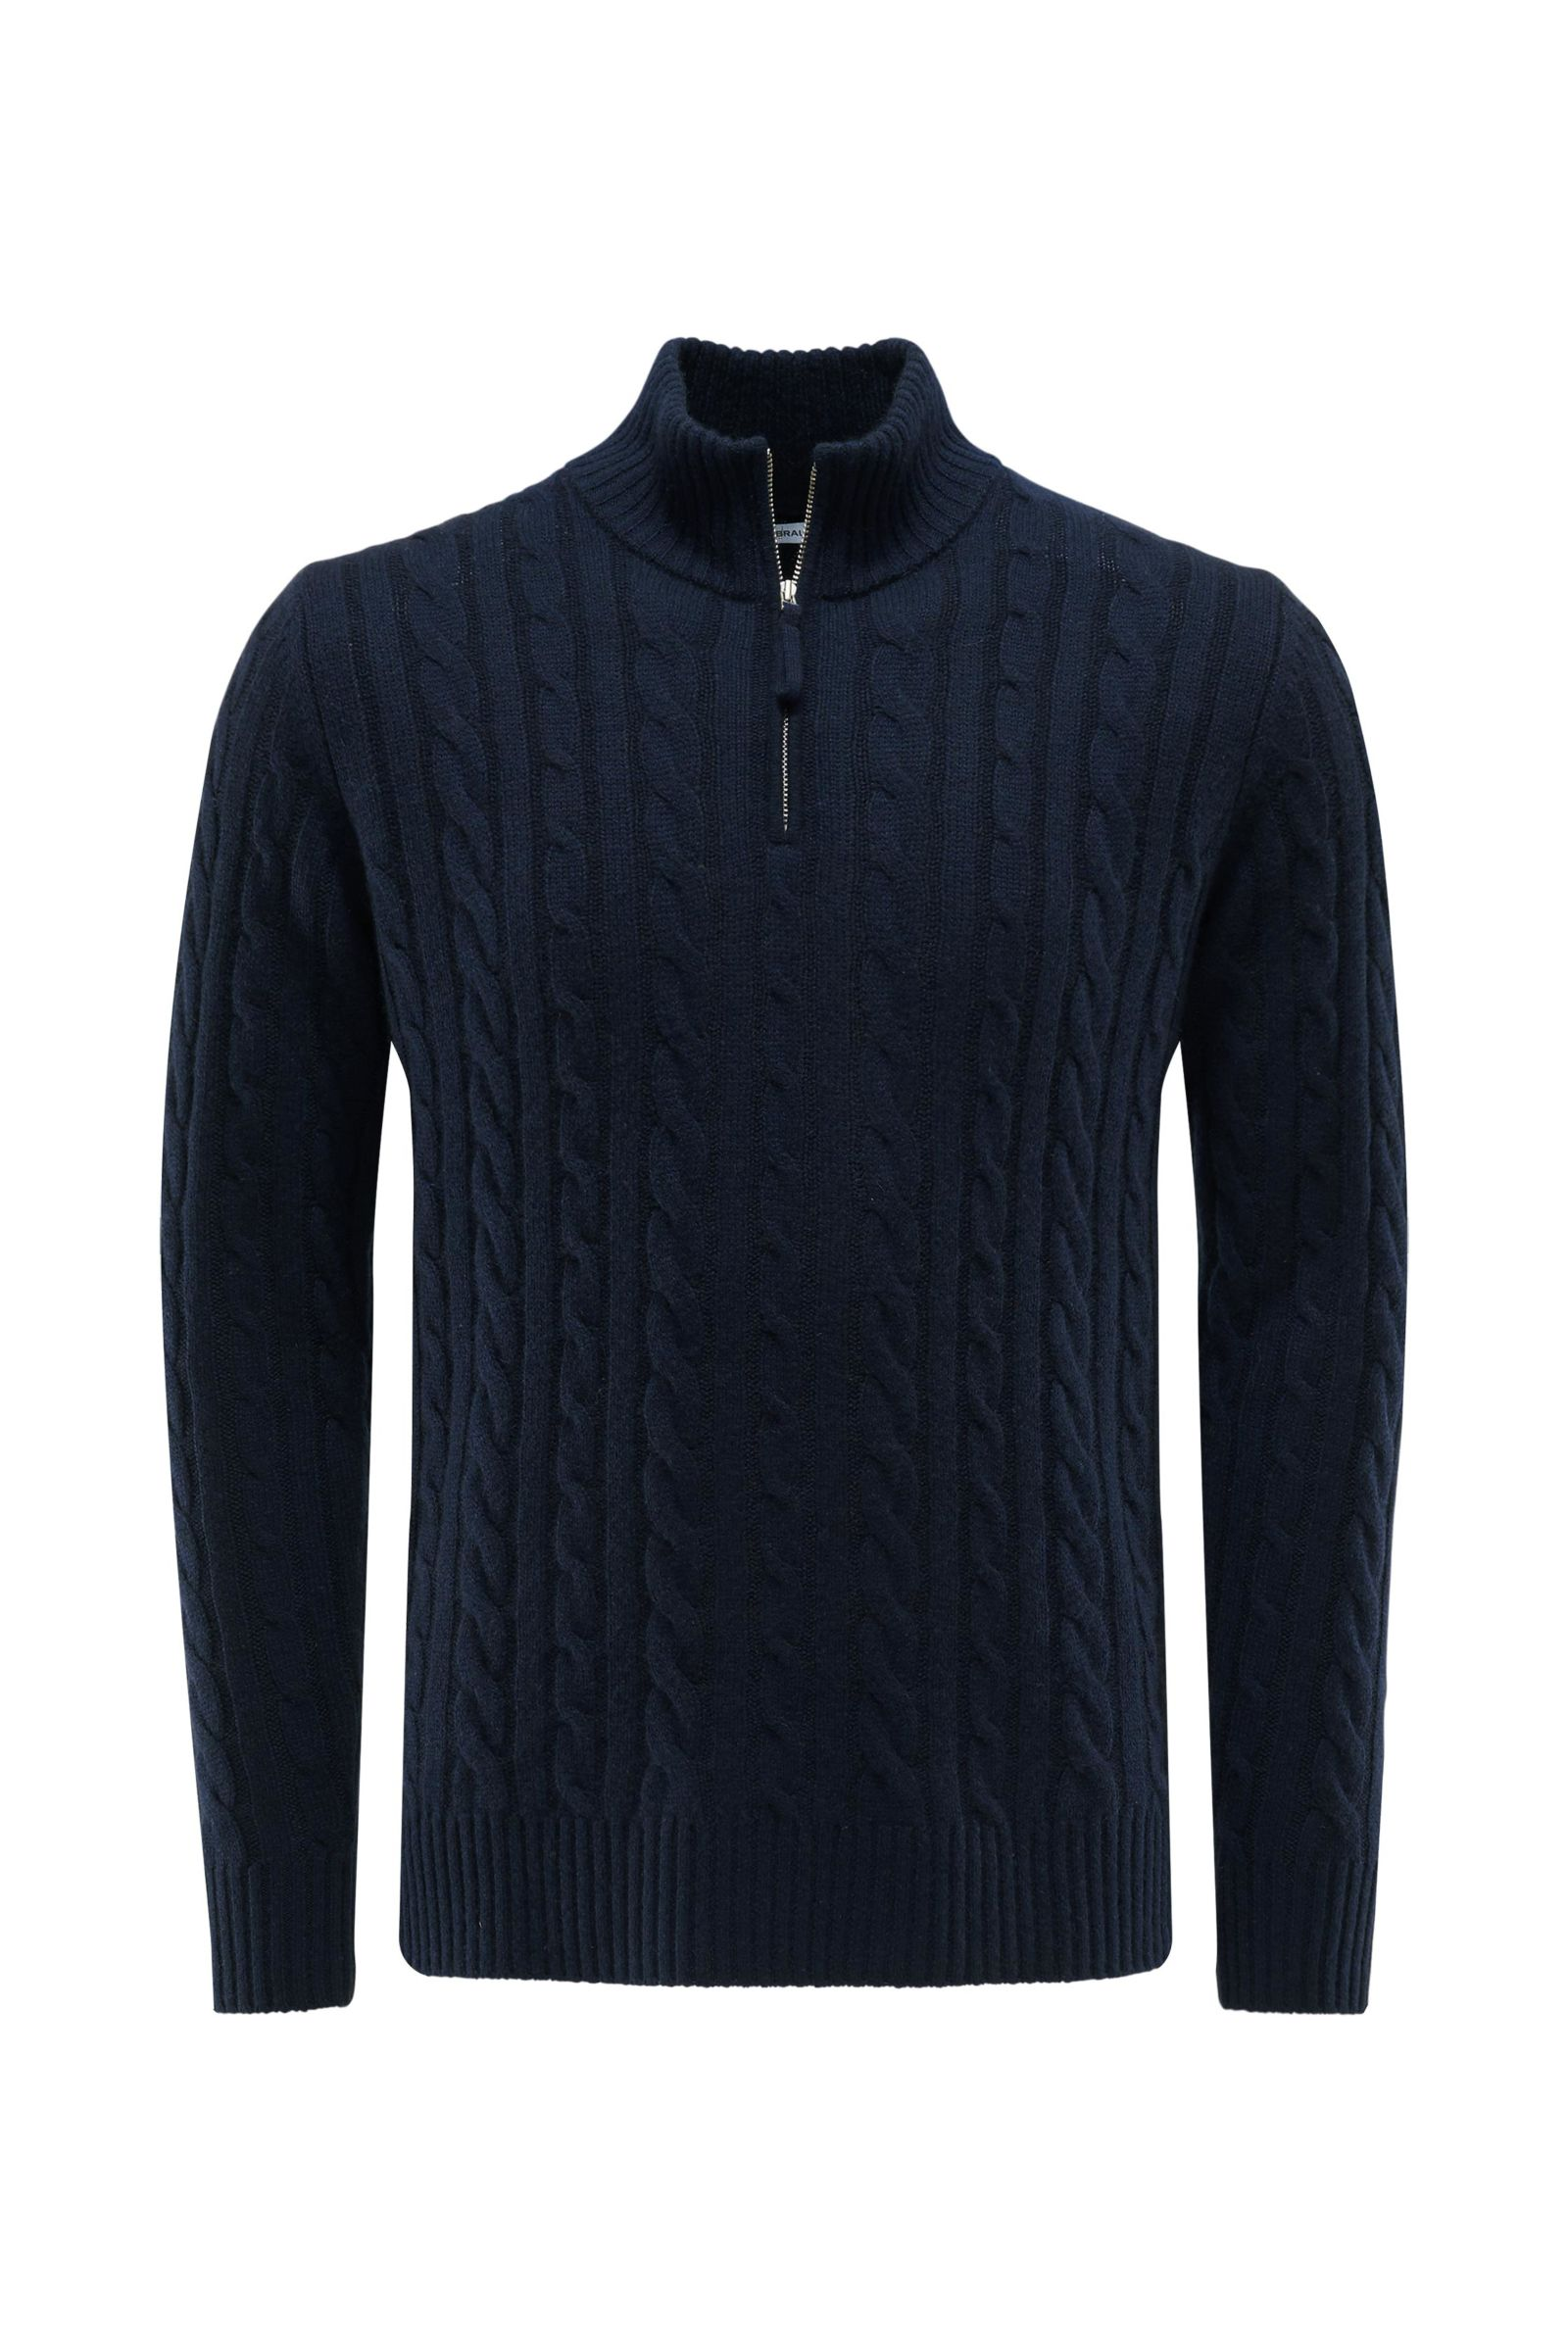 Baby Cashmere Troyer navy